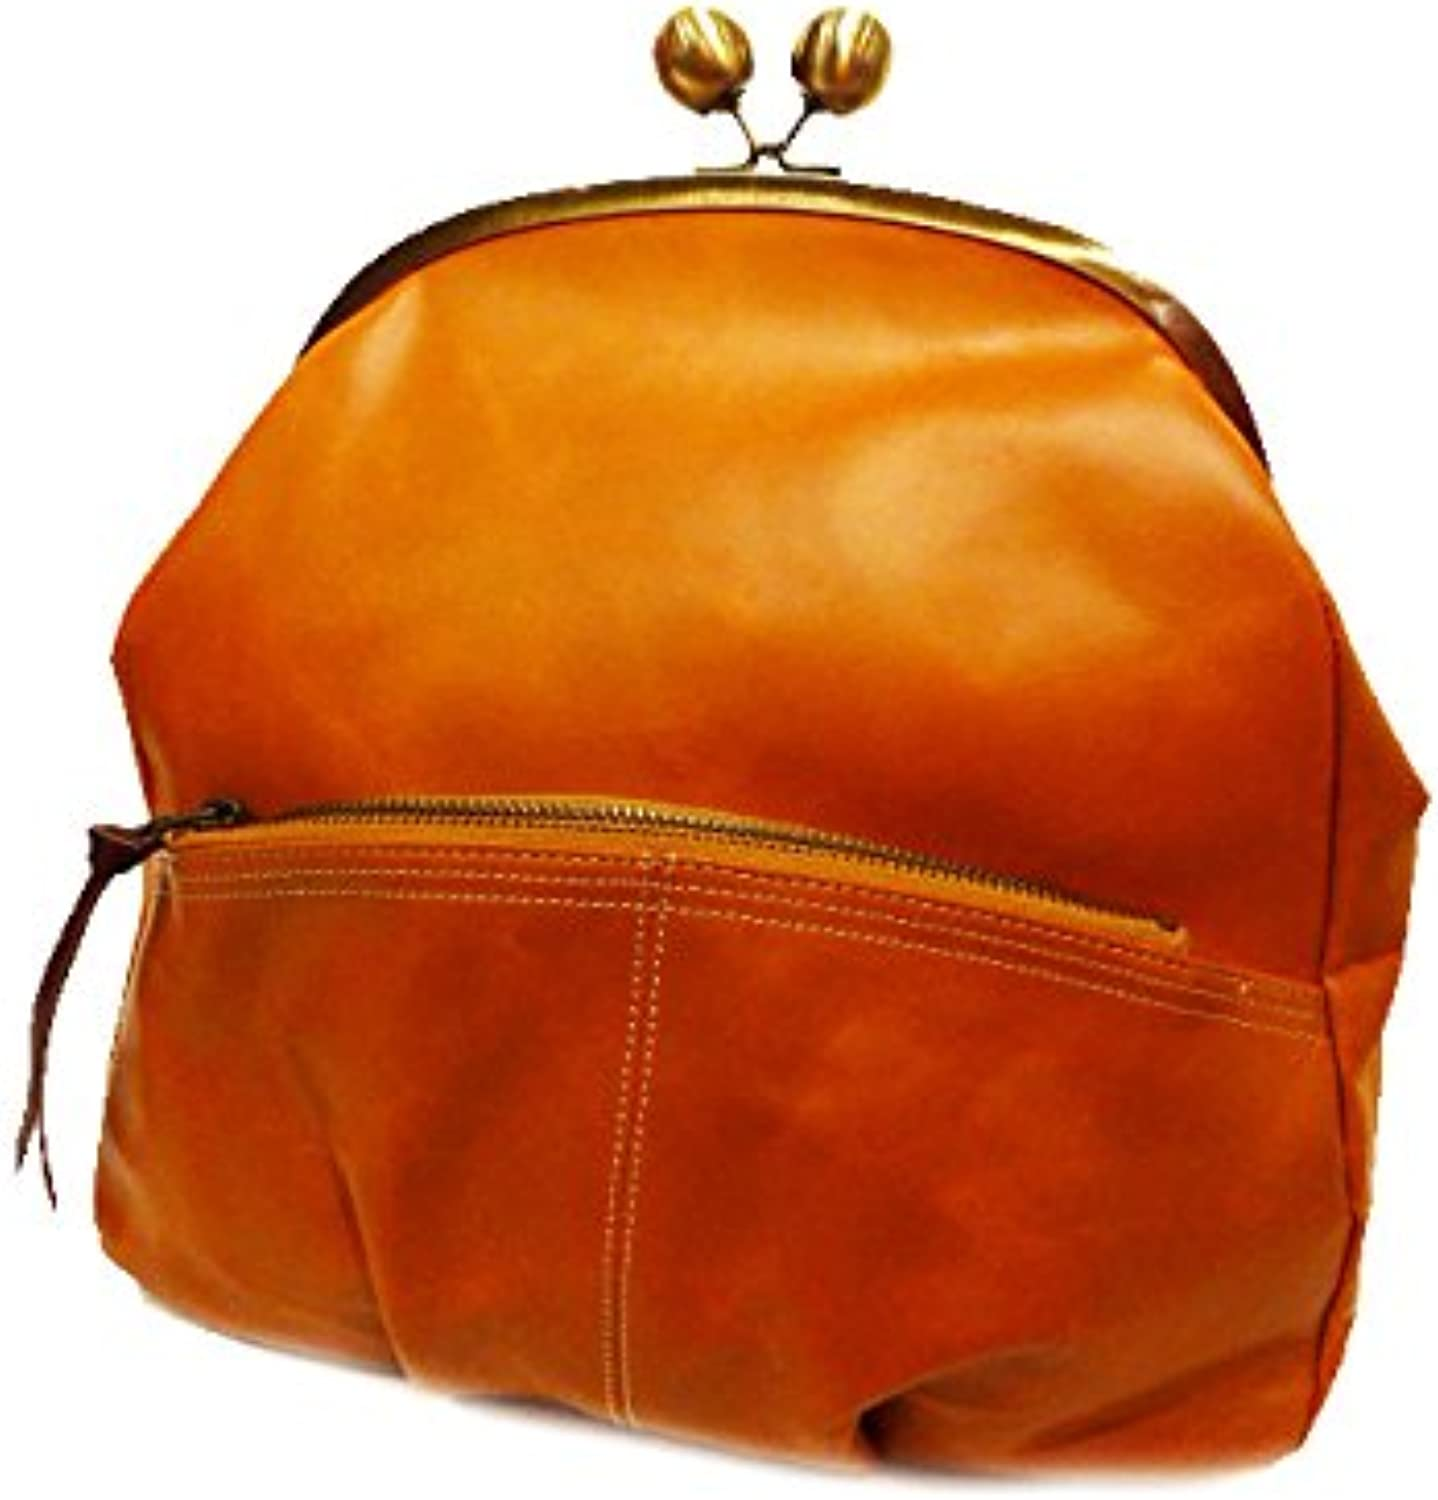 [Lily] LILY Laisser Faire Lesse Fail SB006153 CUZZ Genuine leather squirrel backpack